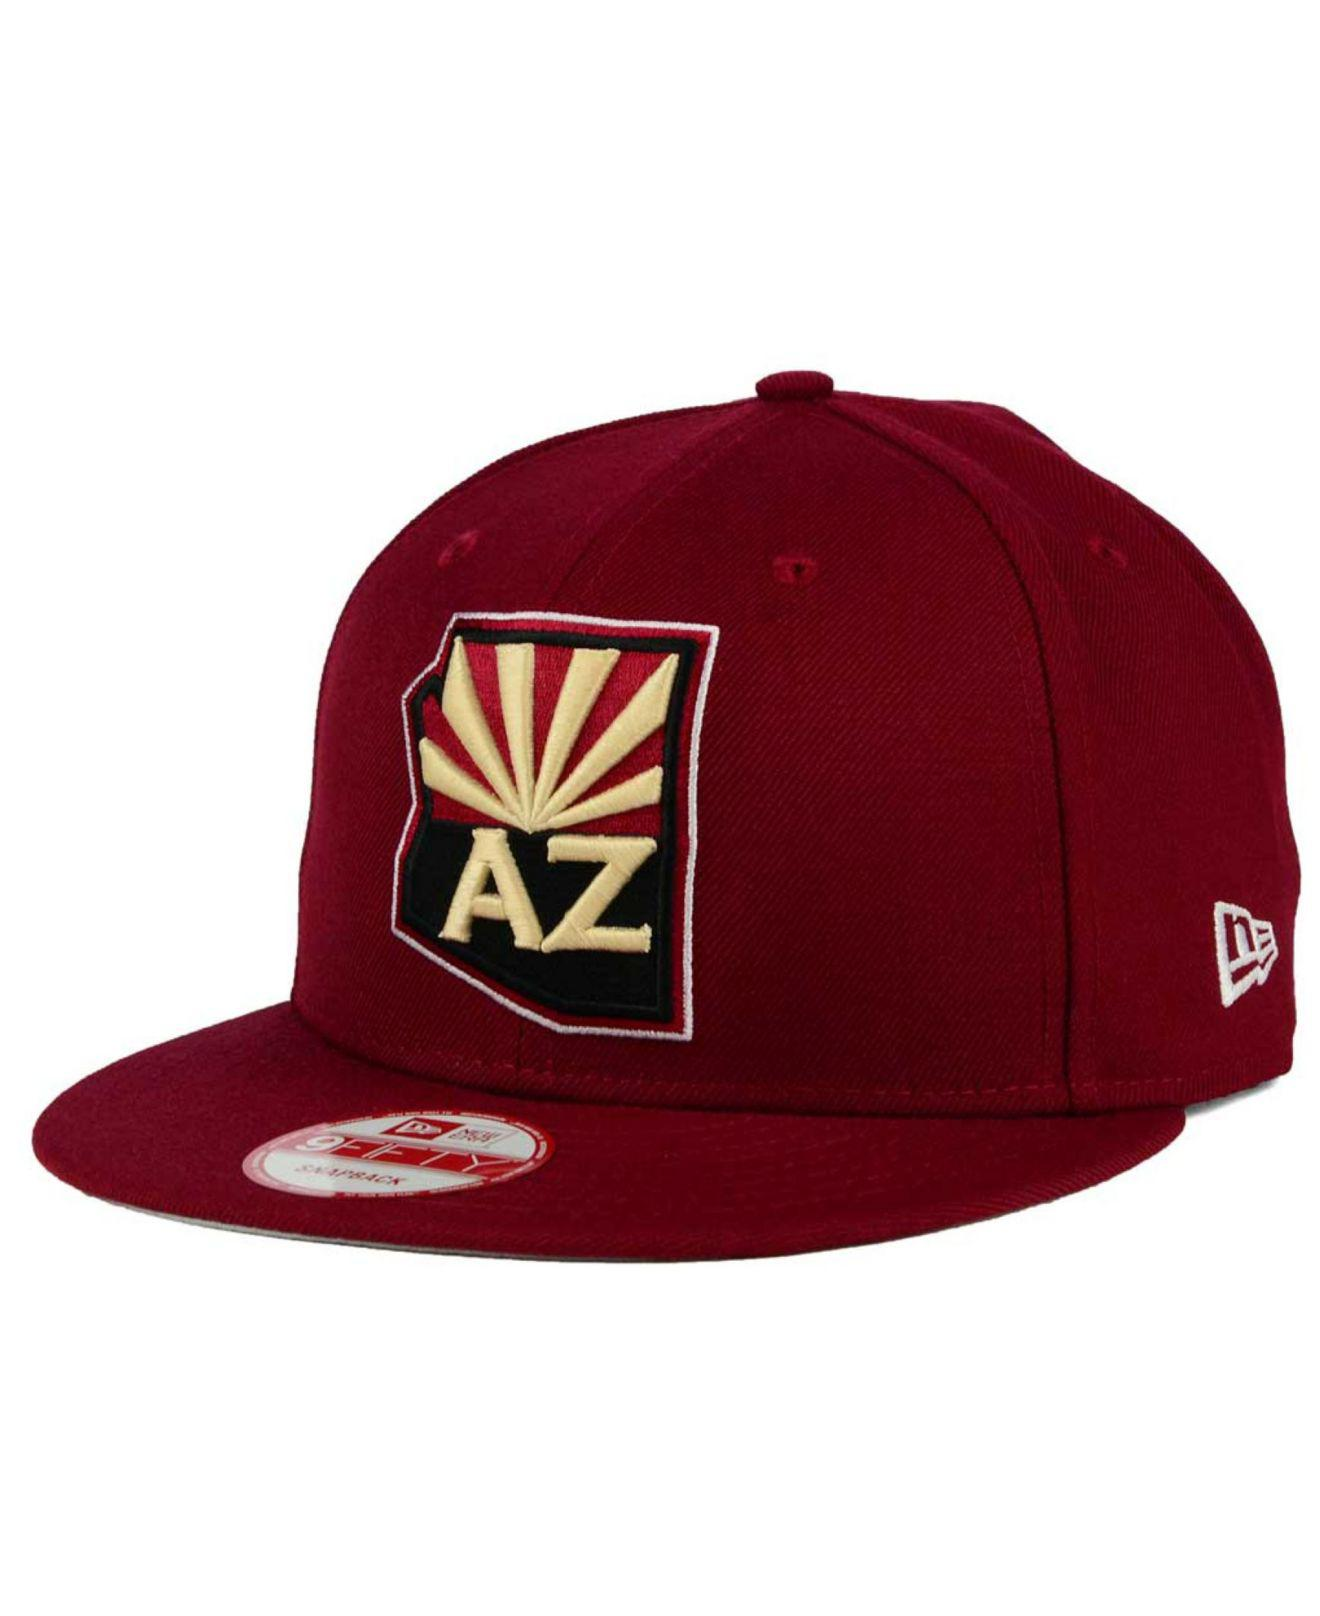 new product 45efa 480ac ... hot lyst ktz arizona coyotes all day 9fifty snapback cap in red for men  e2f5a 2ae4c